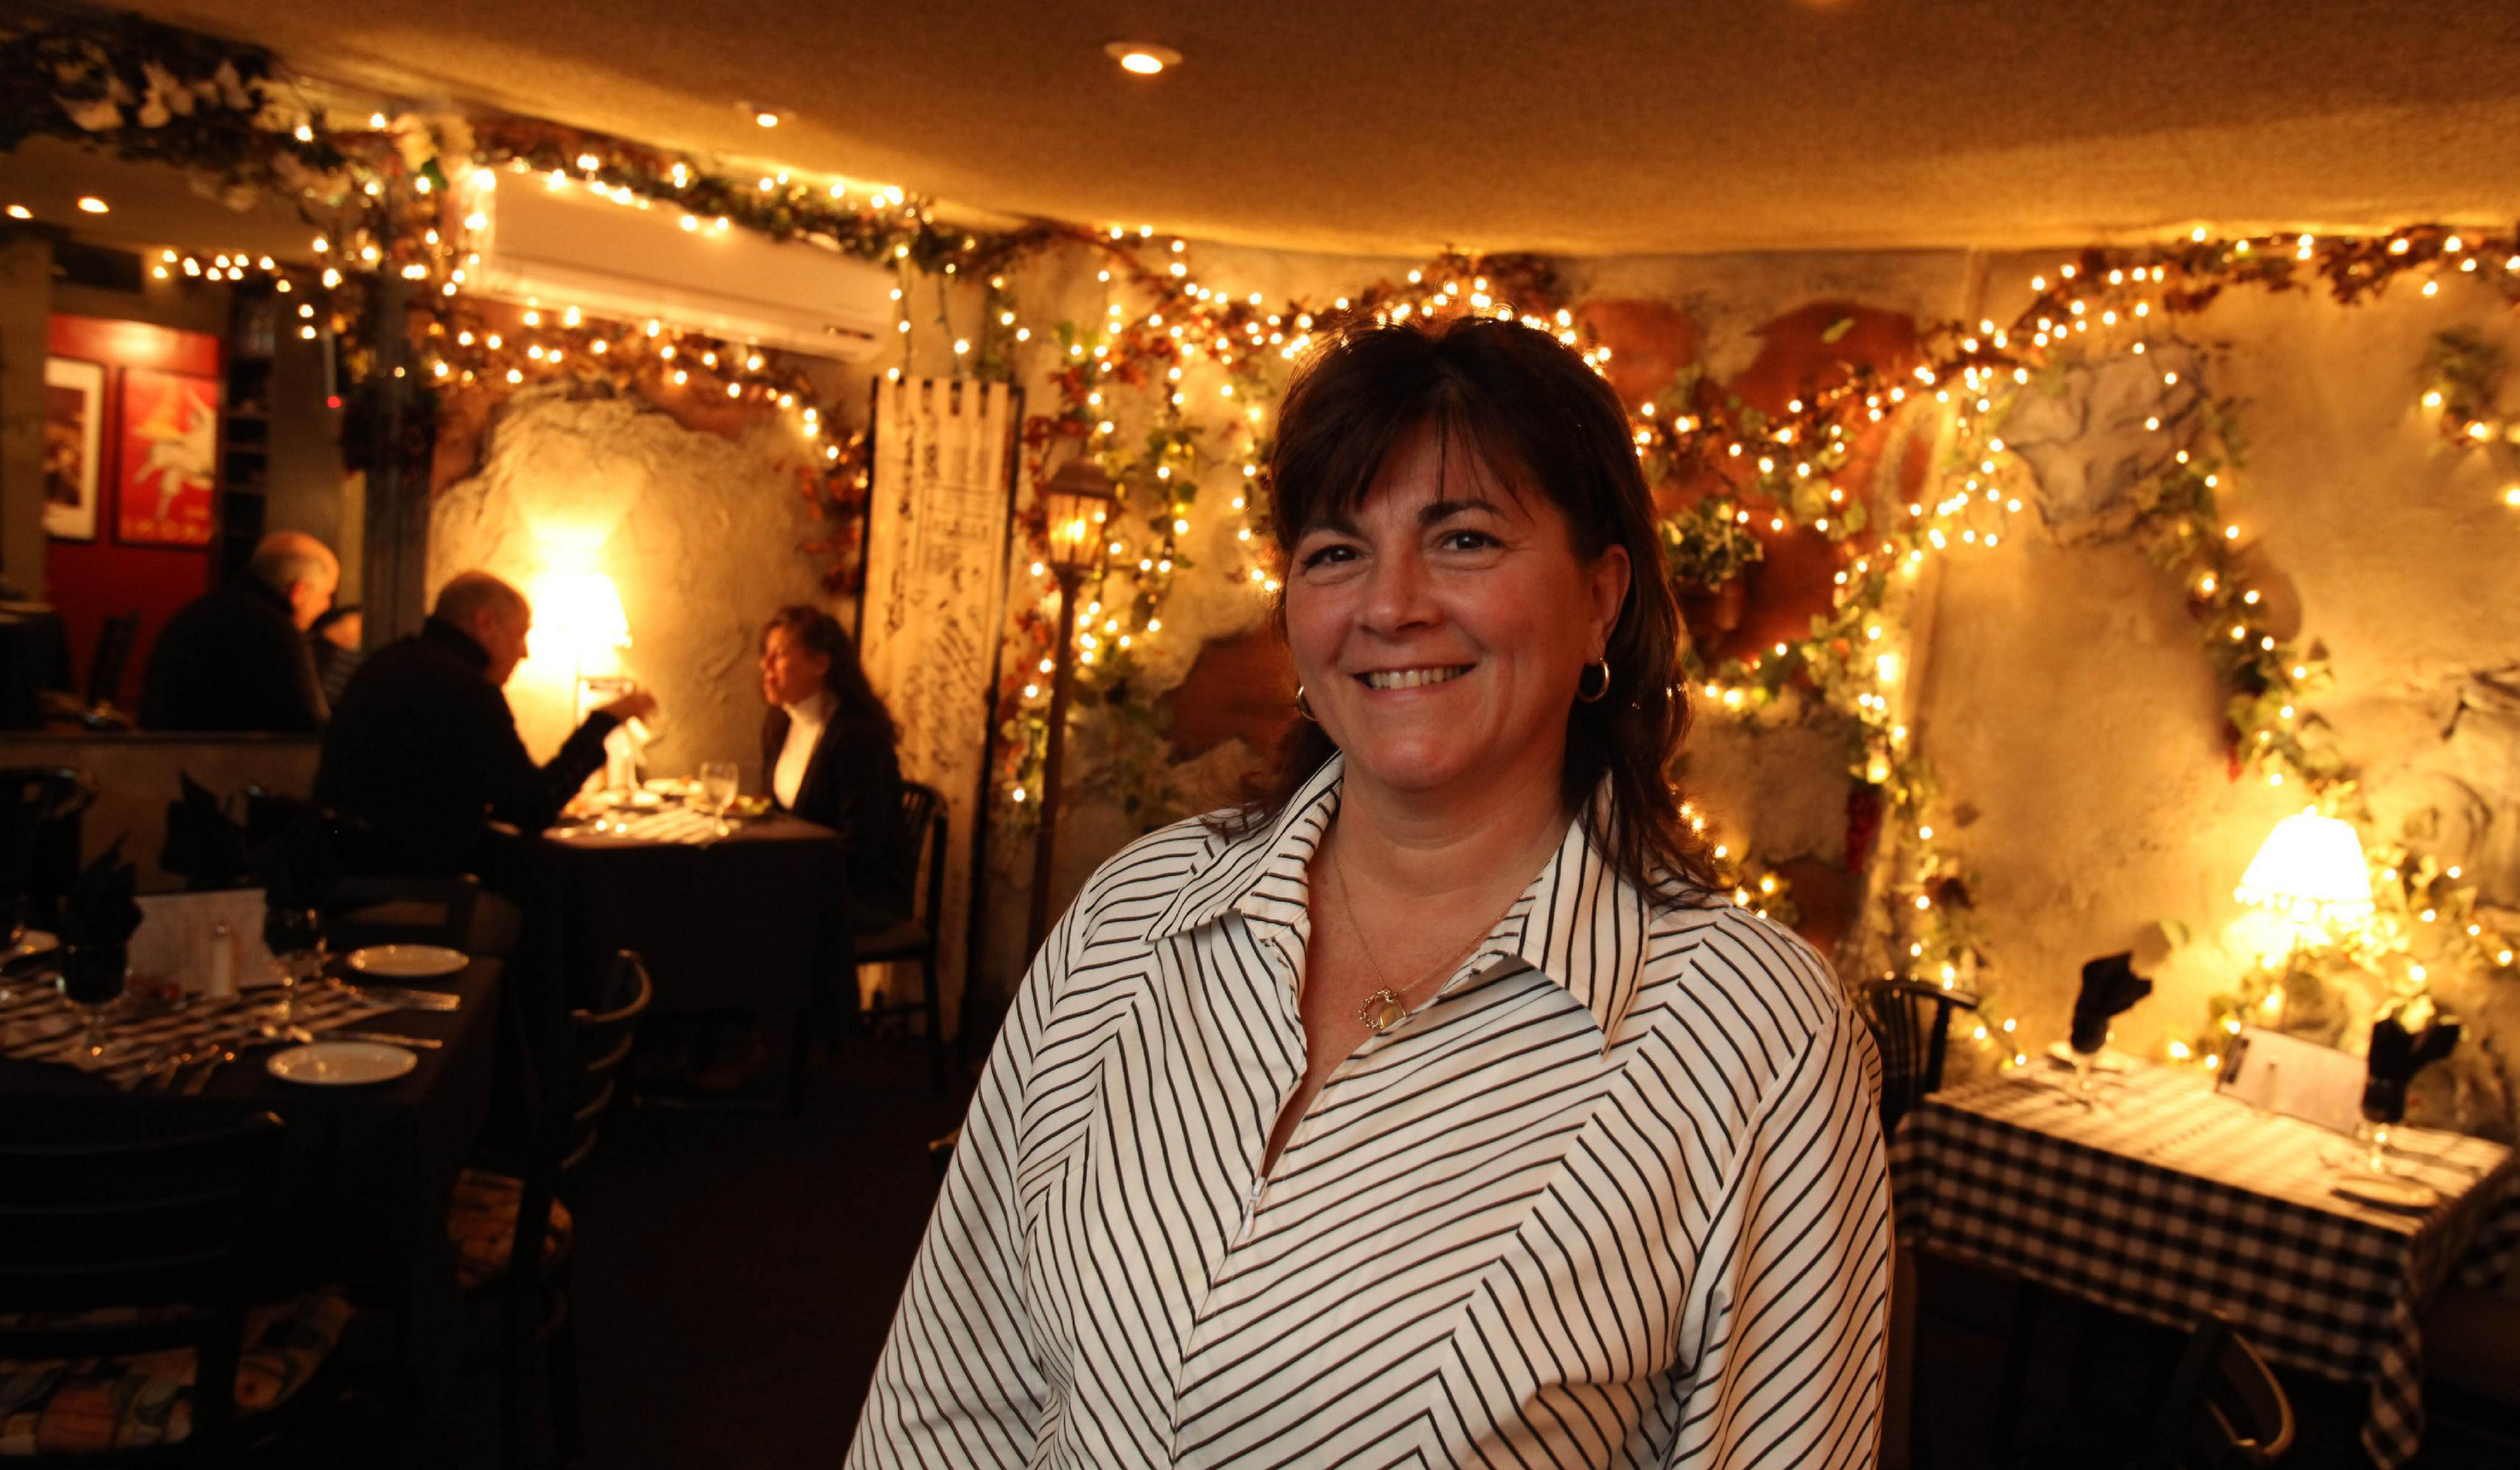 Republican Shelly Schratz is slated to announce her candidacy this morning at Bing's Restaurant, the Amherst restaurant she has owned and operated for many years. (Buffalo News file photo)